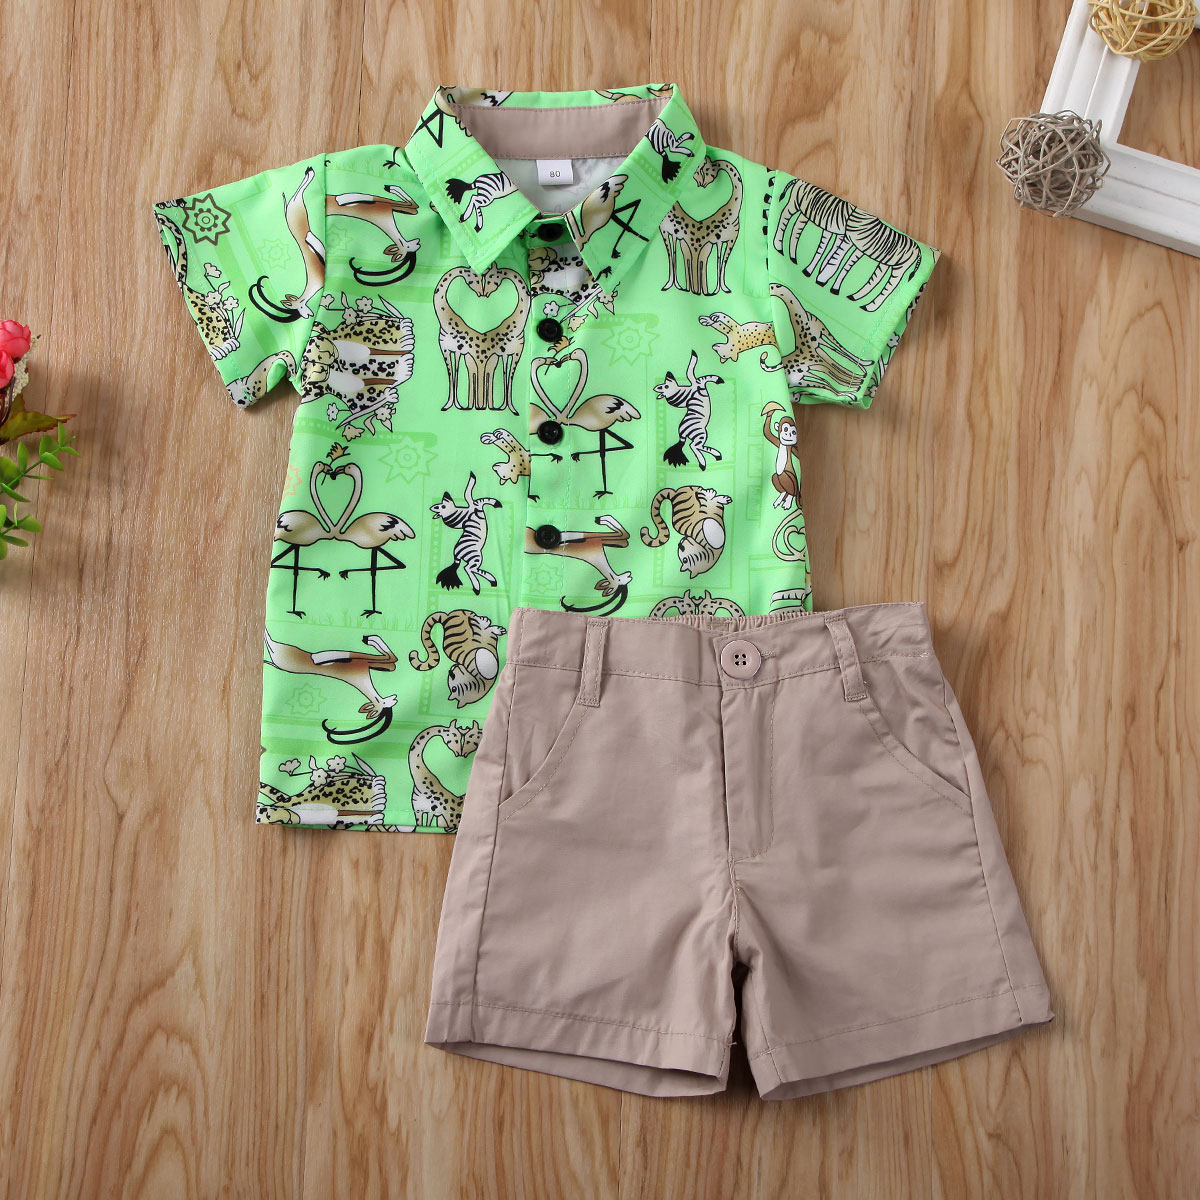 Pudcoco Toddler Baby Boy Clothes Cartoon Animals Print Short Sleeve Shirt Tops Short Pants 2Pcs Outfits Clothes